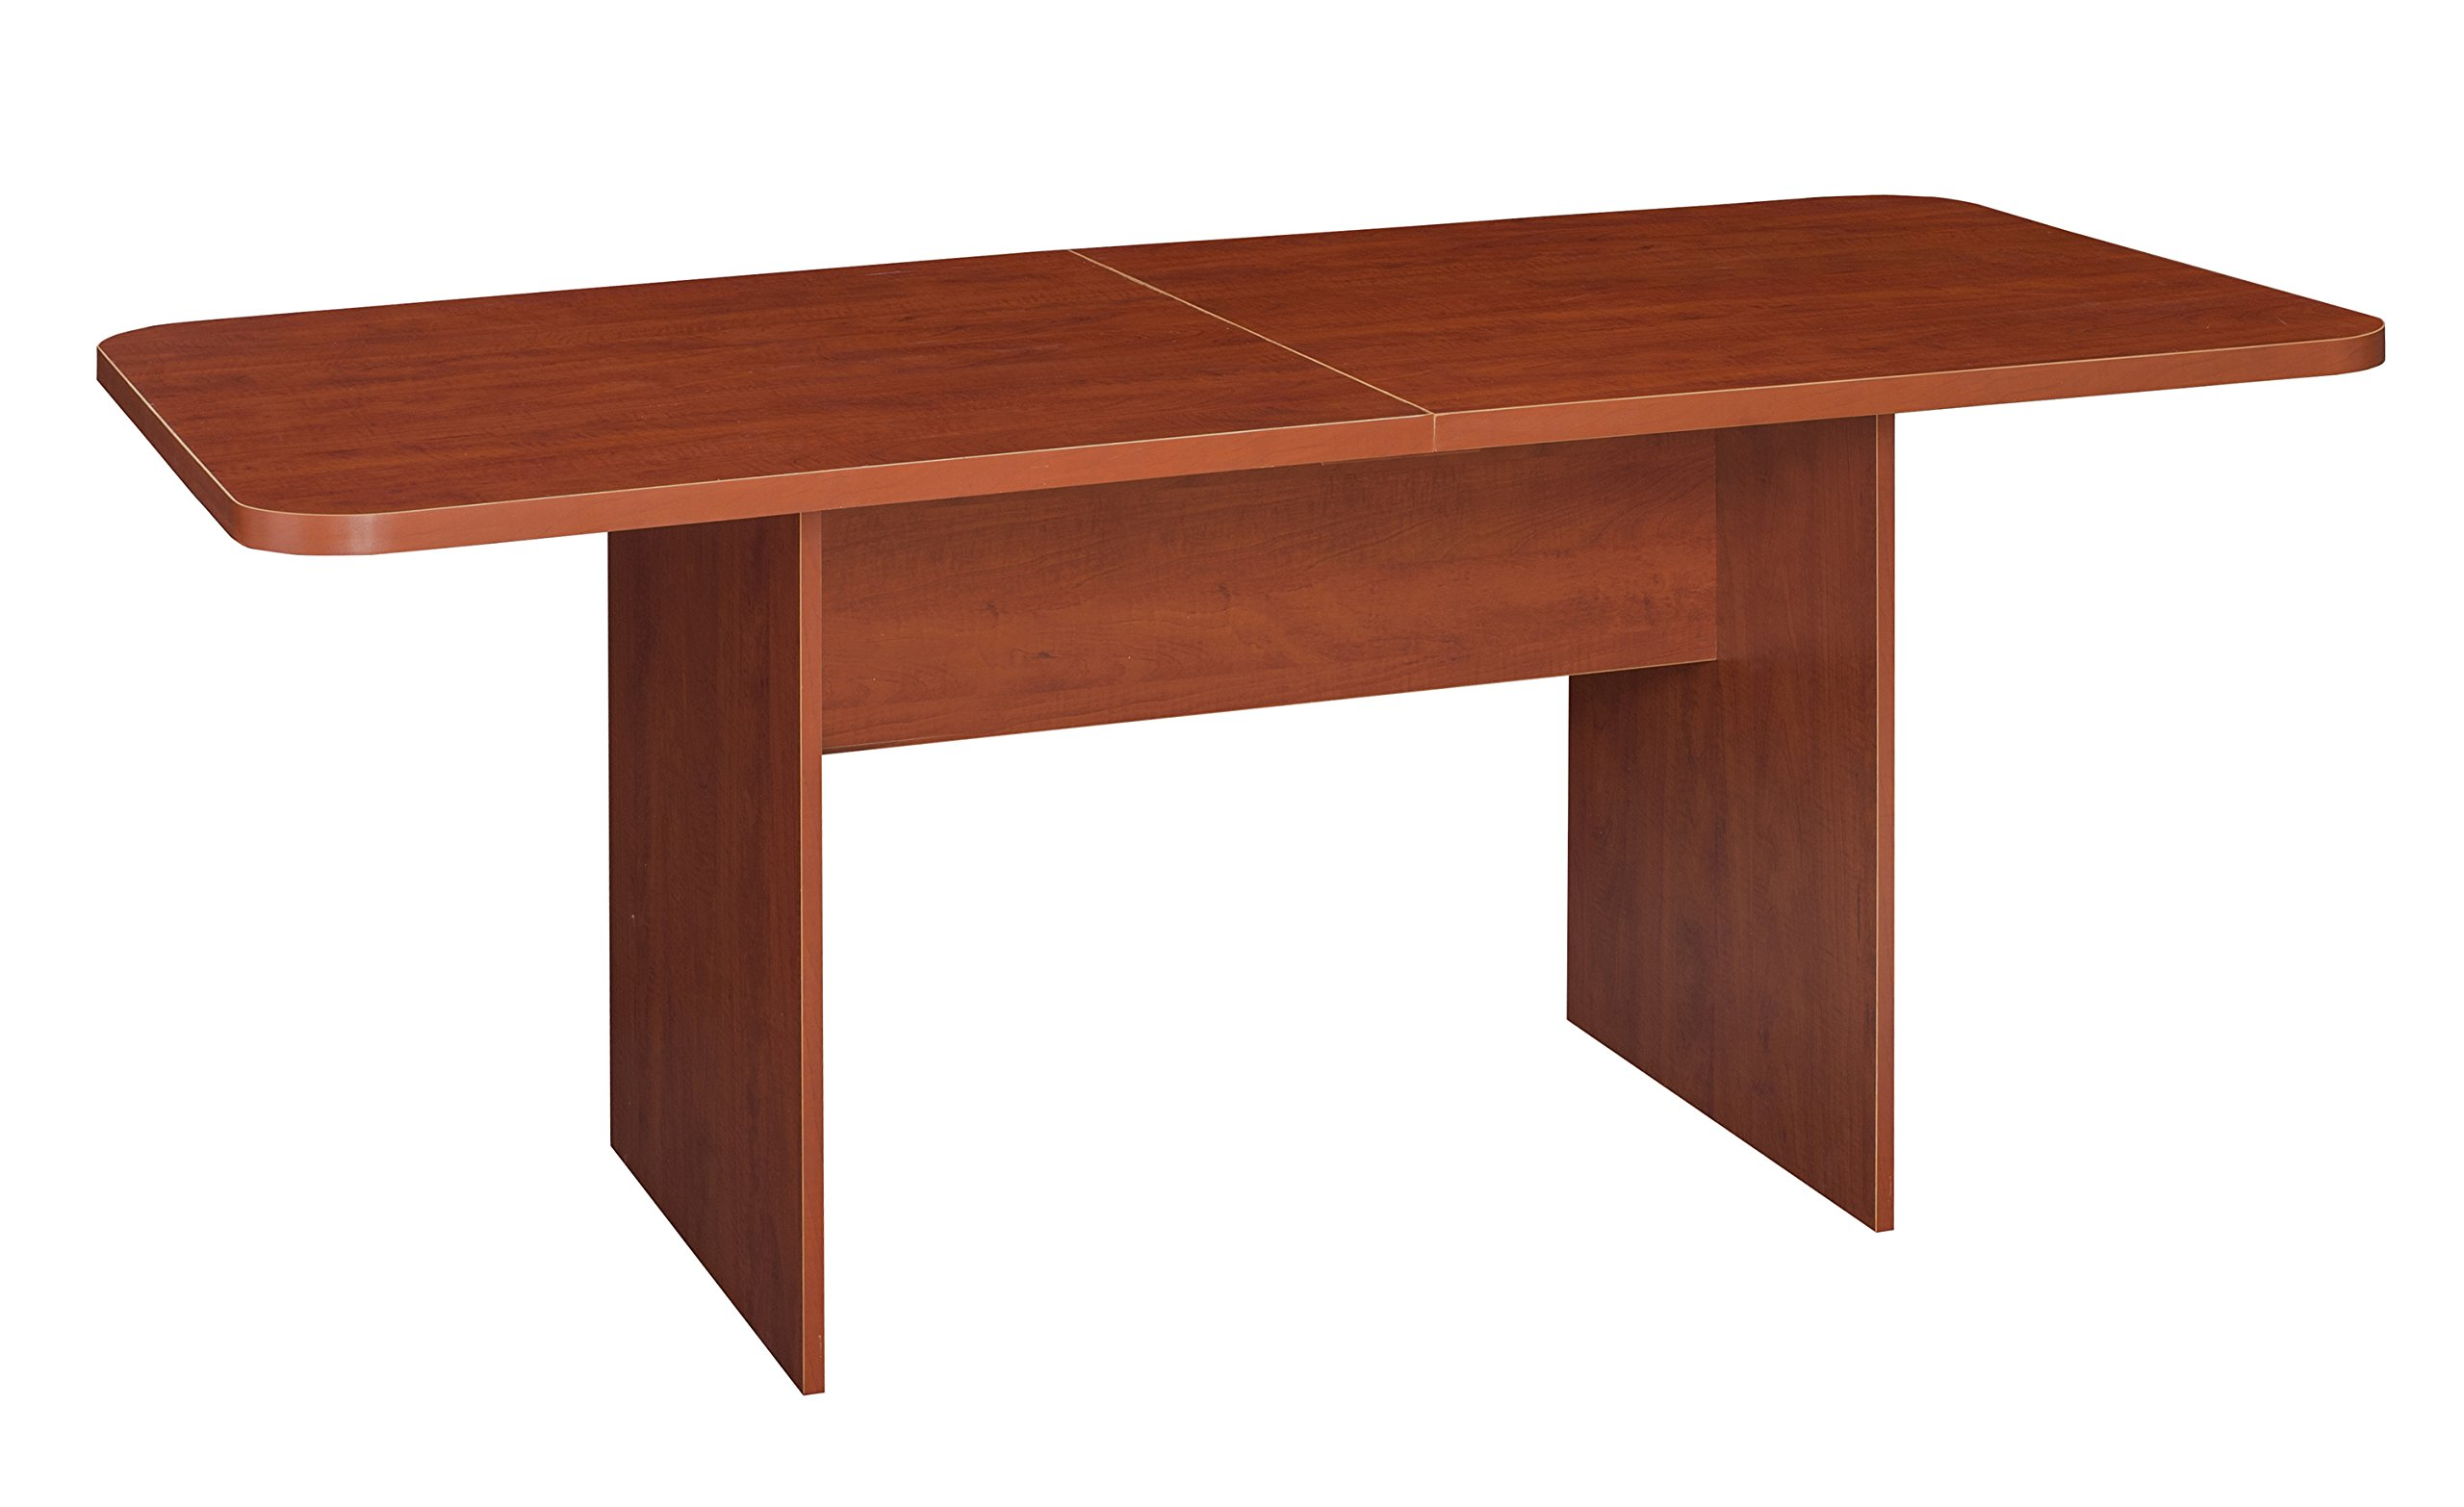 Niche Mod Conference Table with No- with No-Tools Assembly, 6', Cherry by NICHE